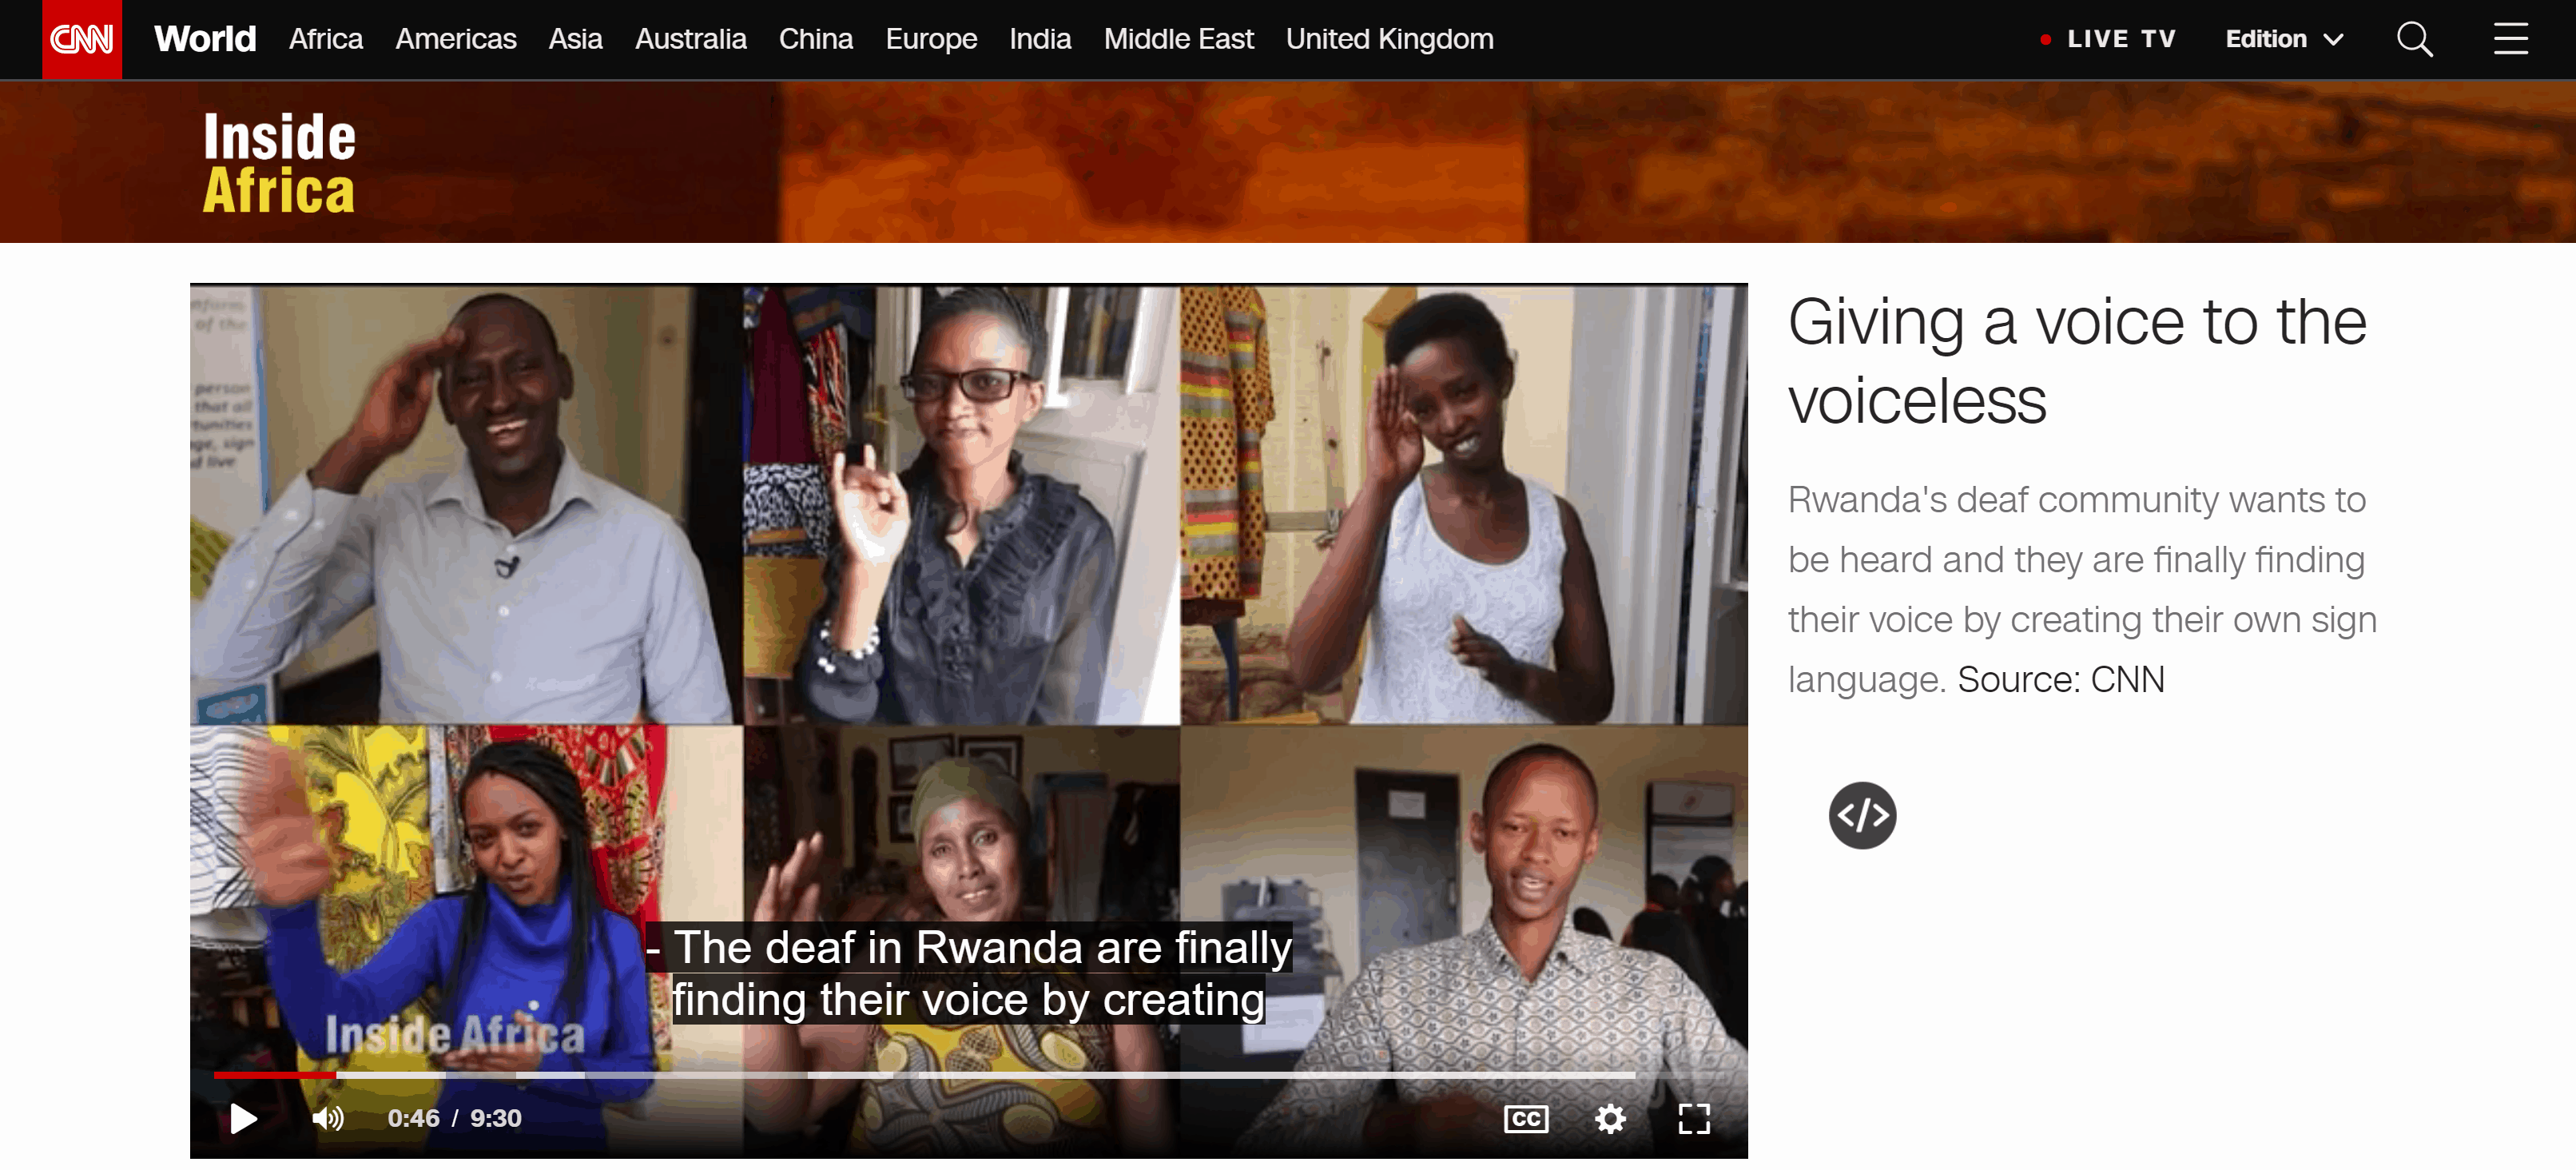 "Screenshot of a page in the CNN news website showing a frozen video ""Giving a voice to the voiceless"" about deaf awareness and empowerment in Rwanda."